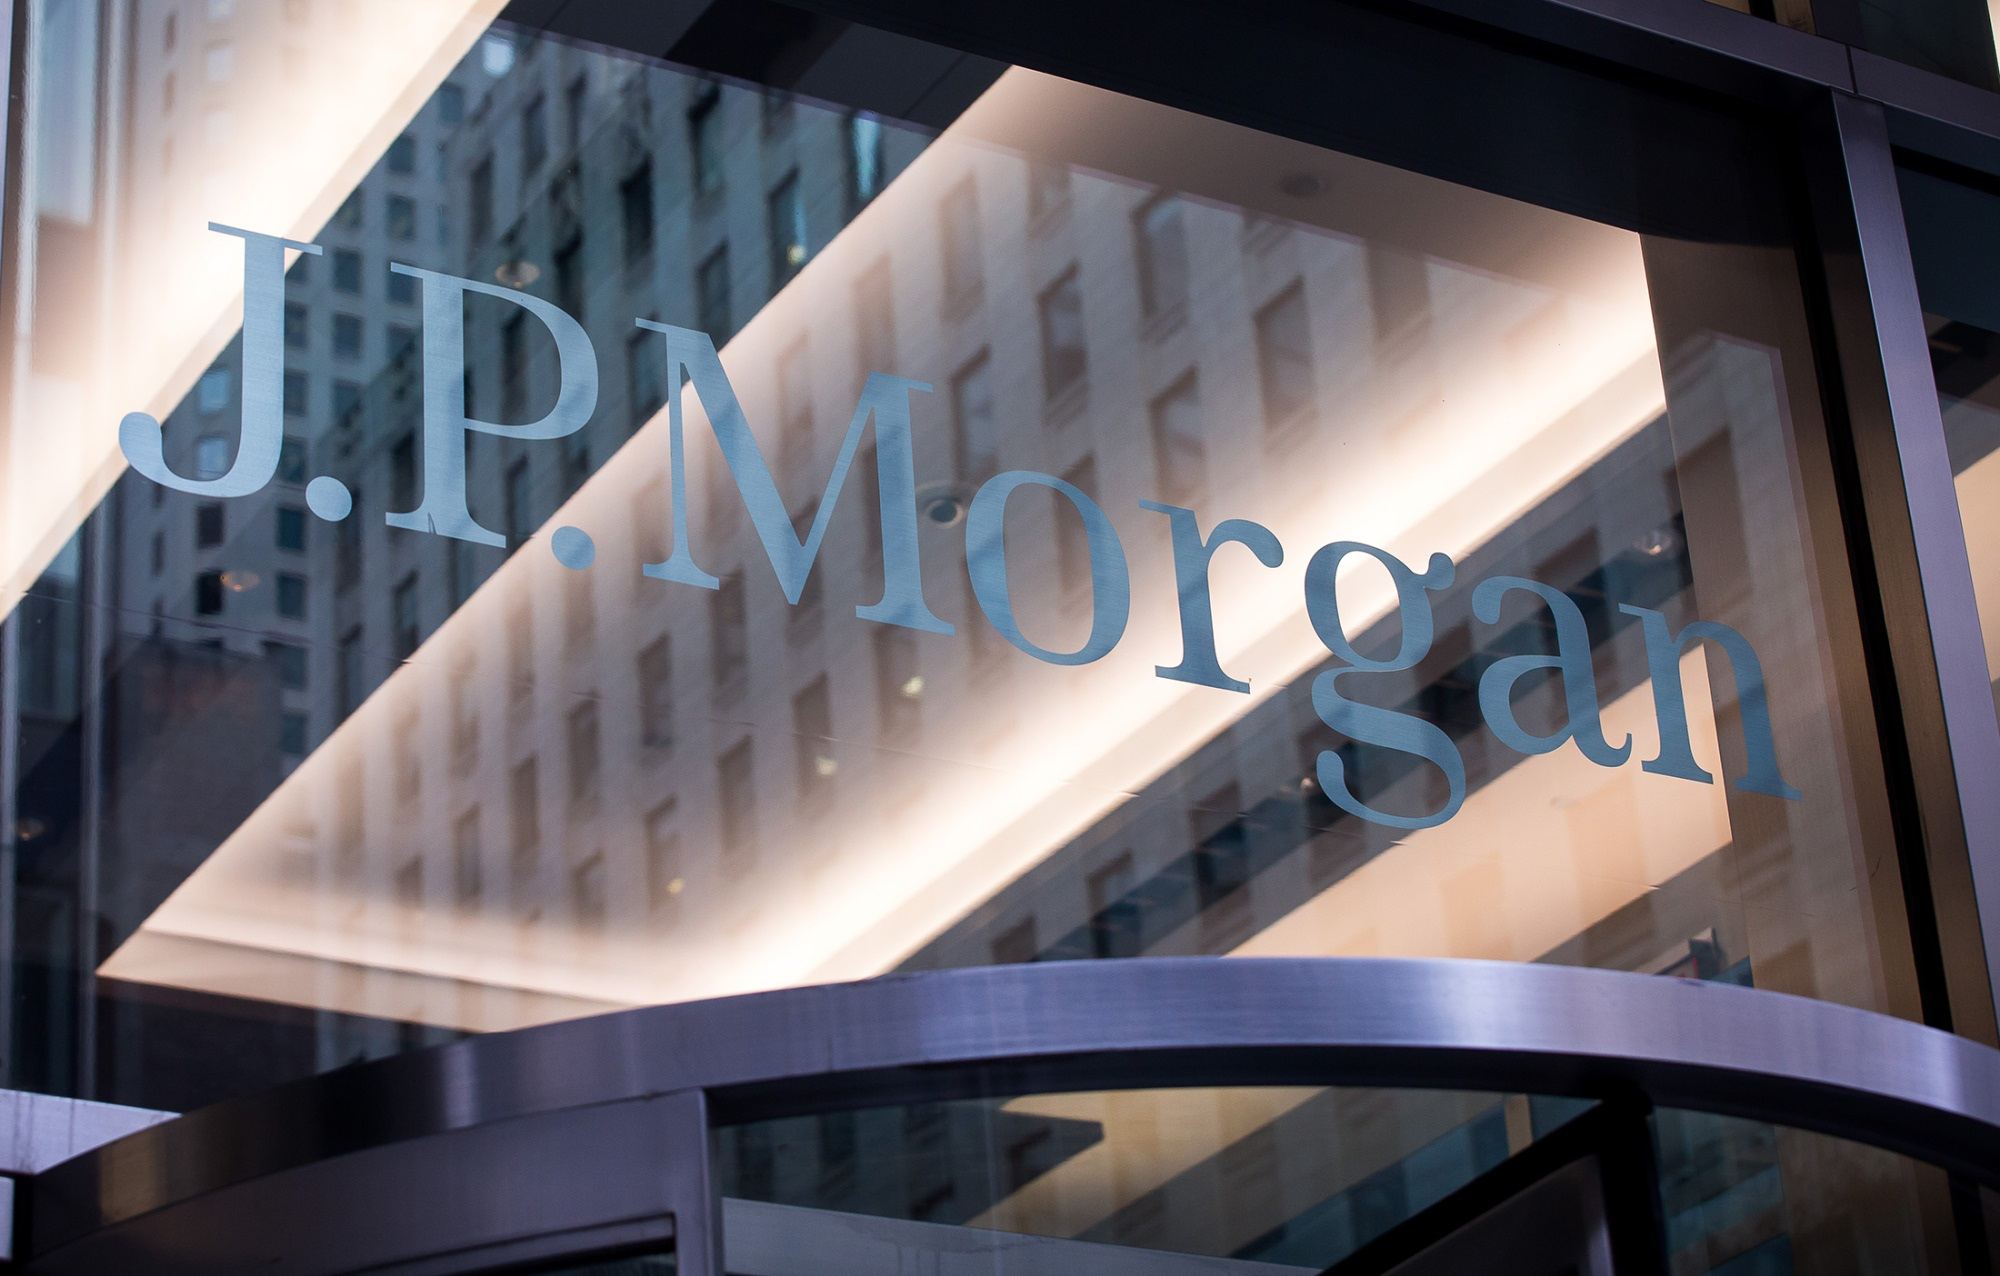 https://assets.sourcemedia.com/90/e7/6dfc570249f8bffc30f8f3a4ad83/jpmorgan-glass-sign-bloomberg-news.jpg